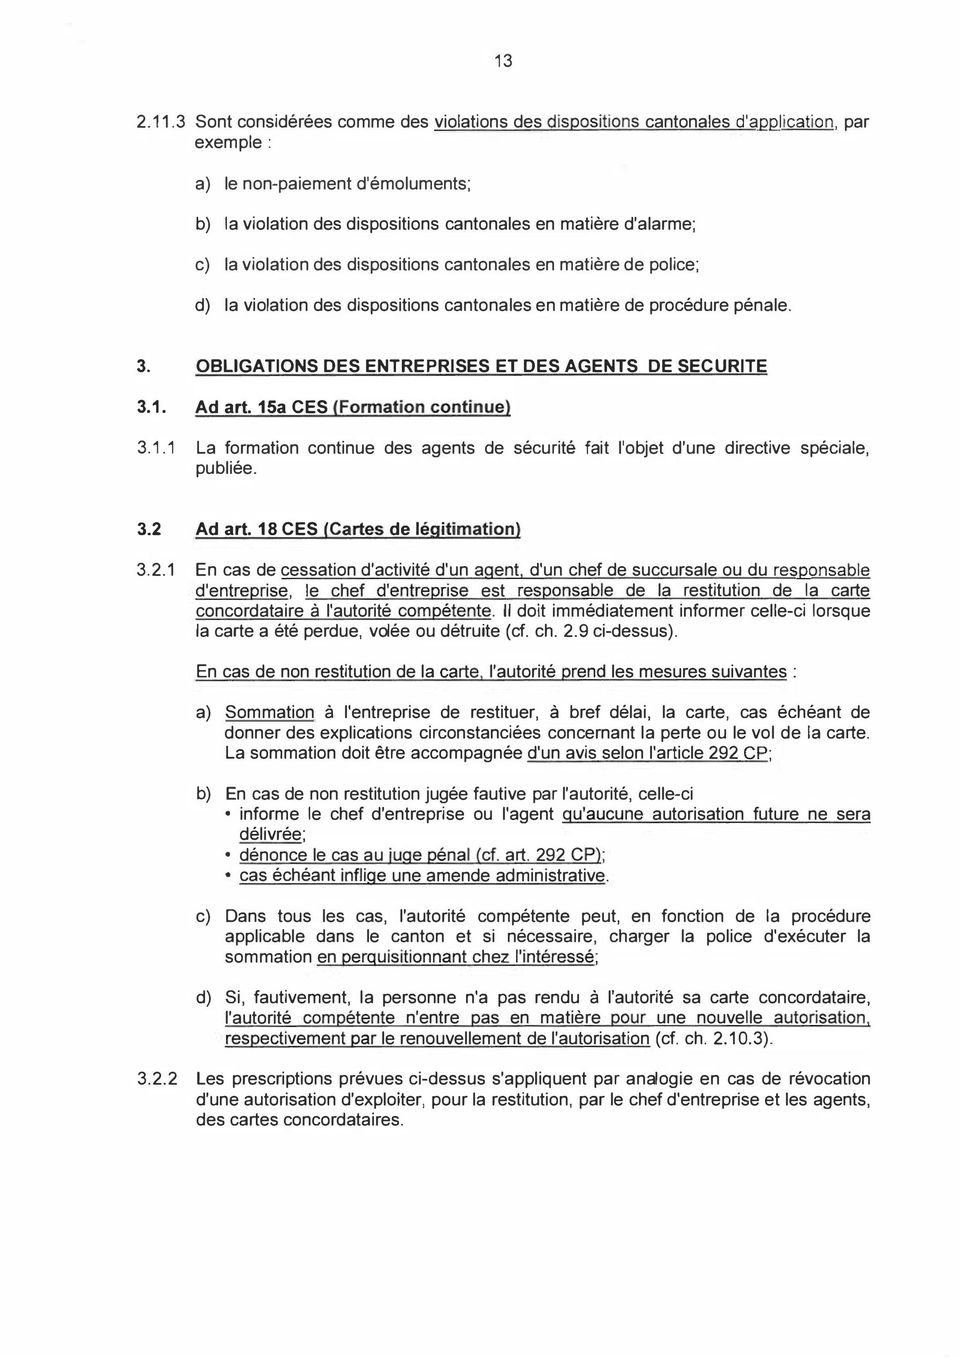 violation des dispositions cantonales en matière de police; d) la violation des dispositions cantonales en matière de procédure pénale. 3. OBLIGATIONS DES ENTREPRISES ET DES AGENTS DE SECURITE 3.1.